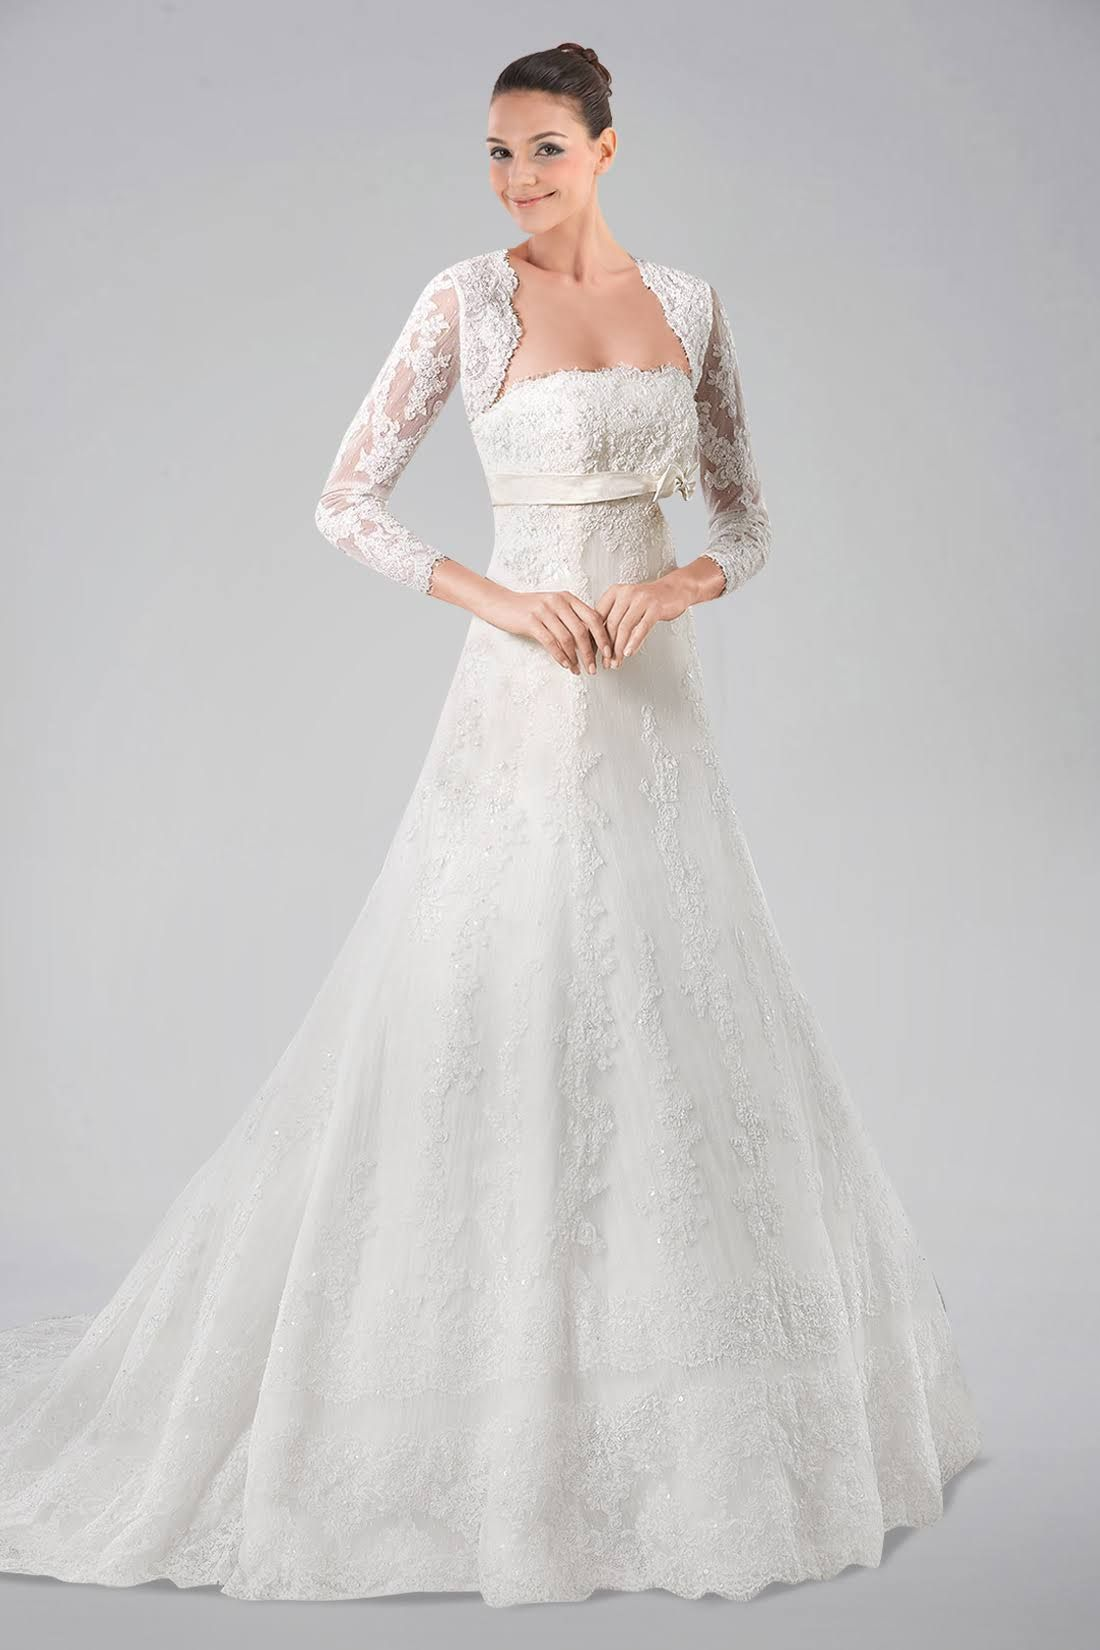 Beauteous long sleeve wedding gown with lace overlay and bowknot